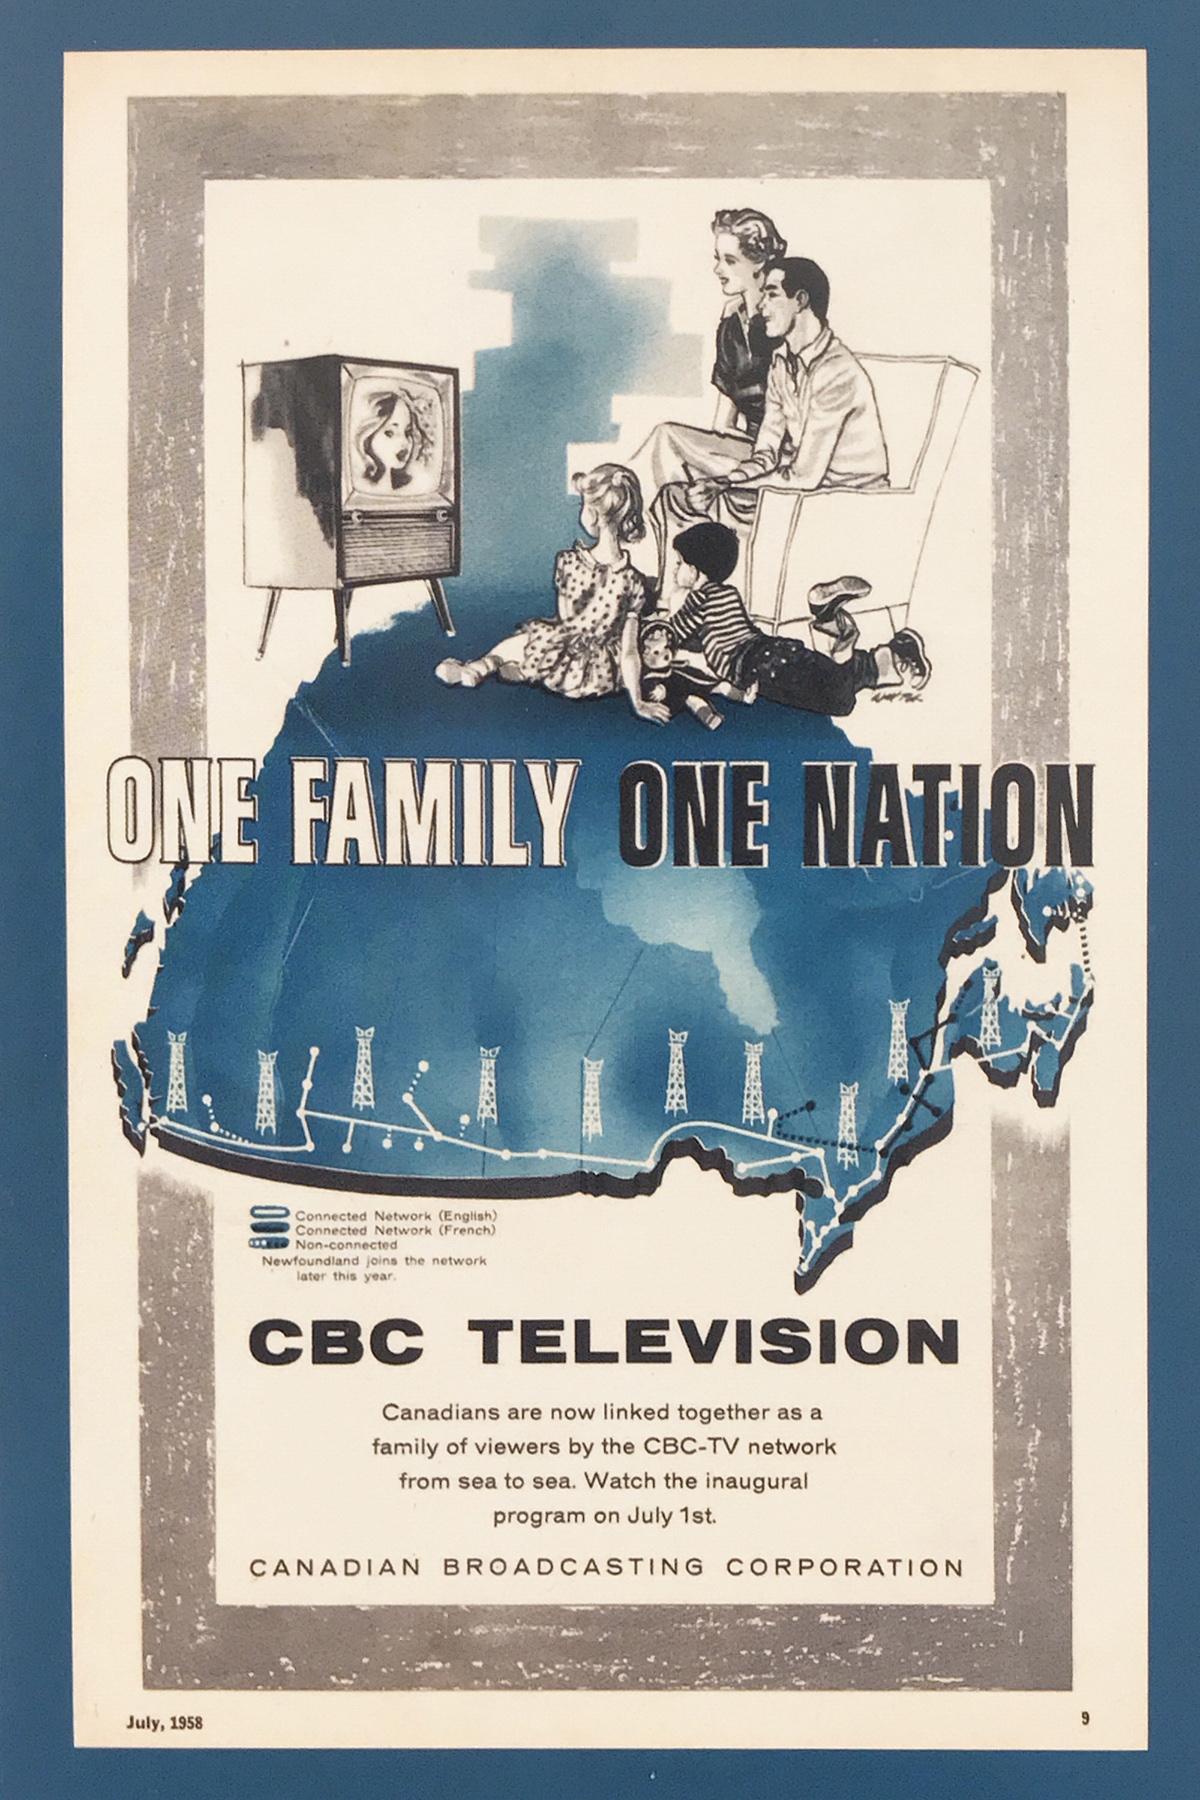 CBC Television -One Family One Nation advertisement 1958 - postcard